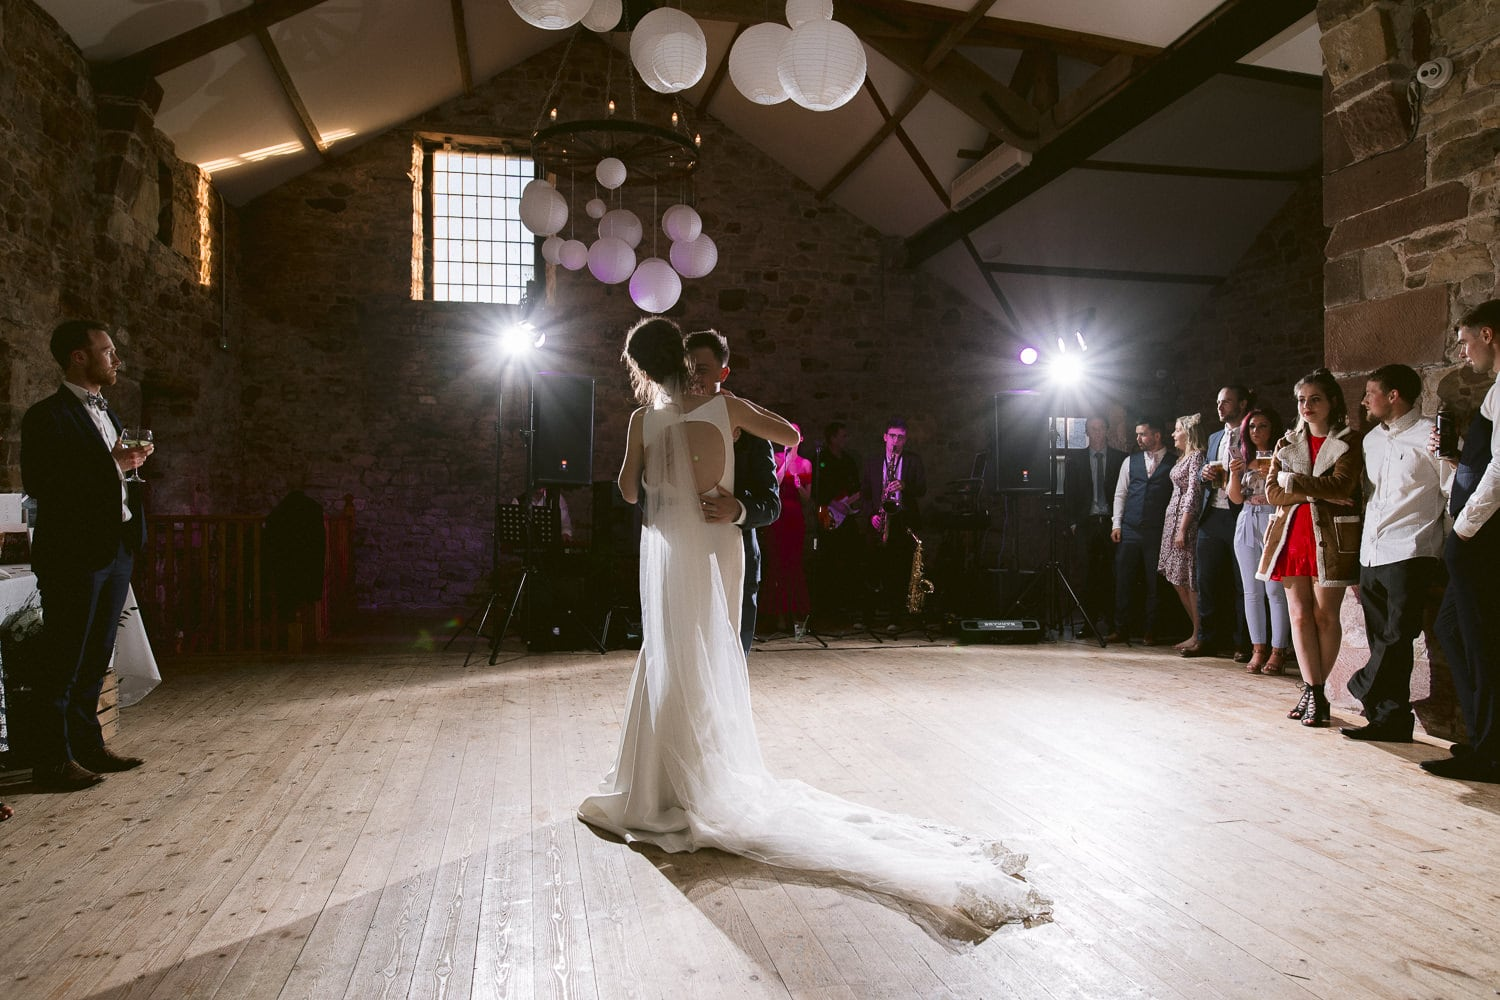 Bride In The Middle of Dance Floor With Guests Photography Shoot